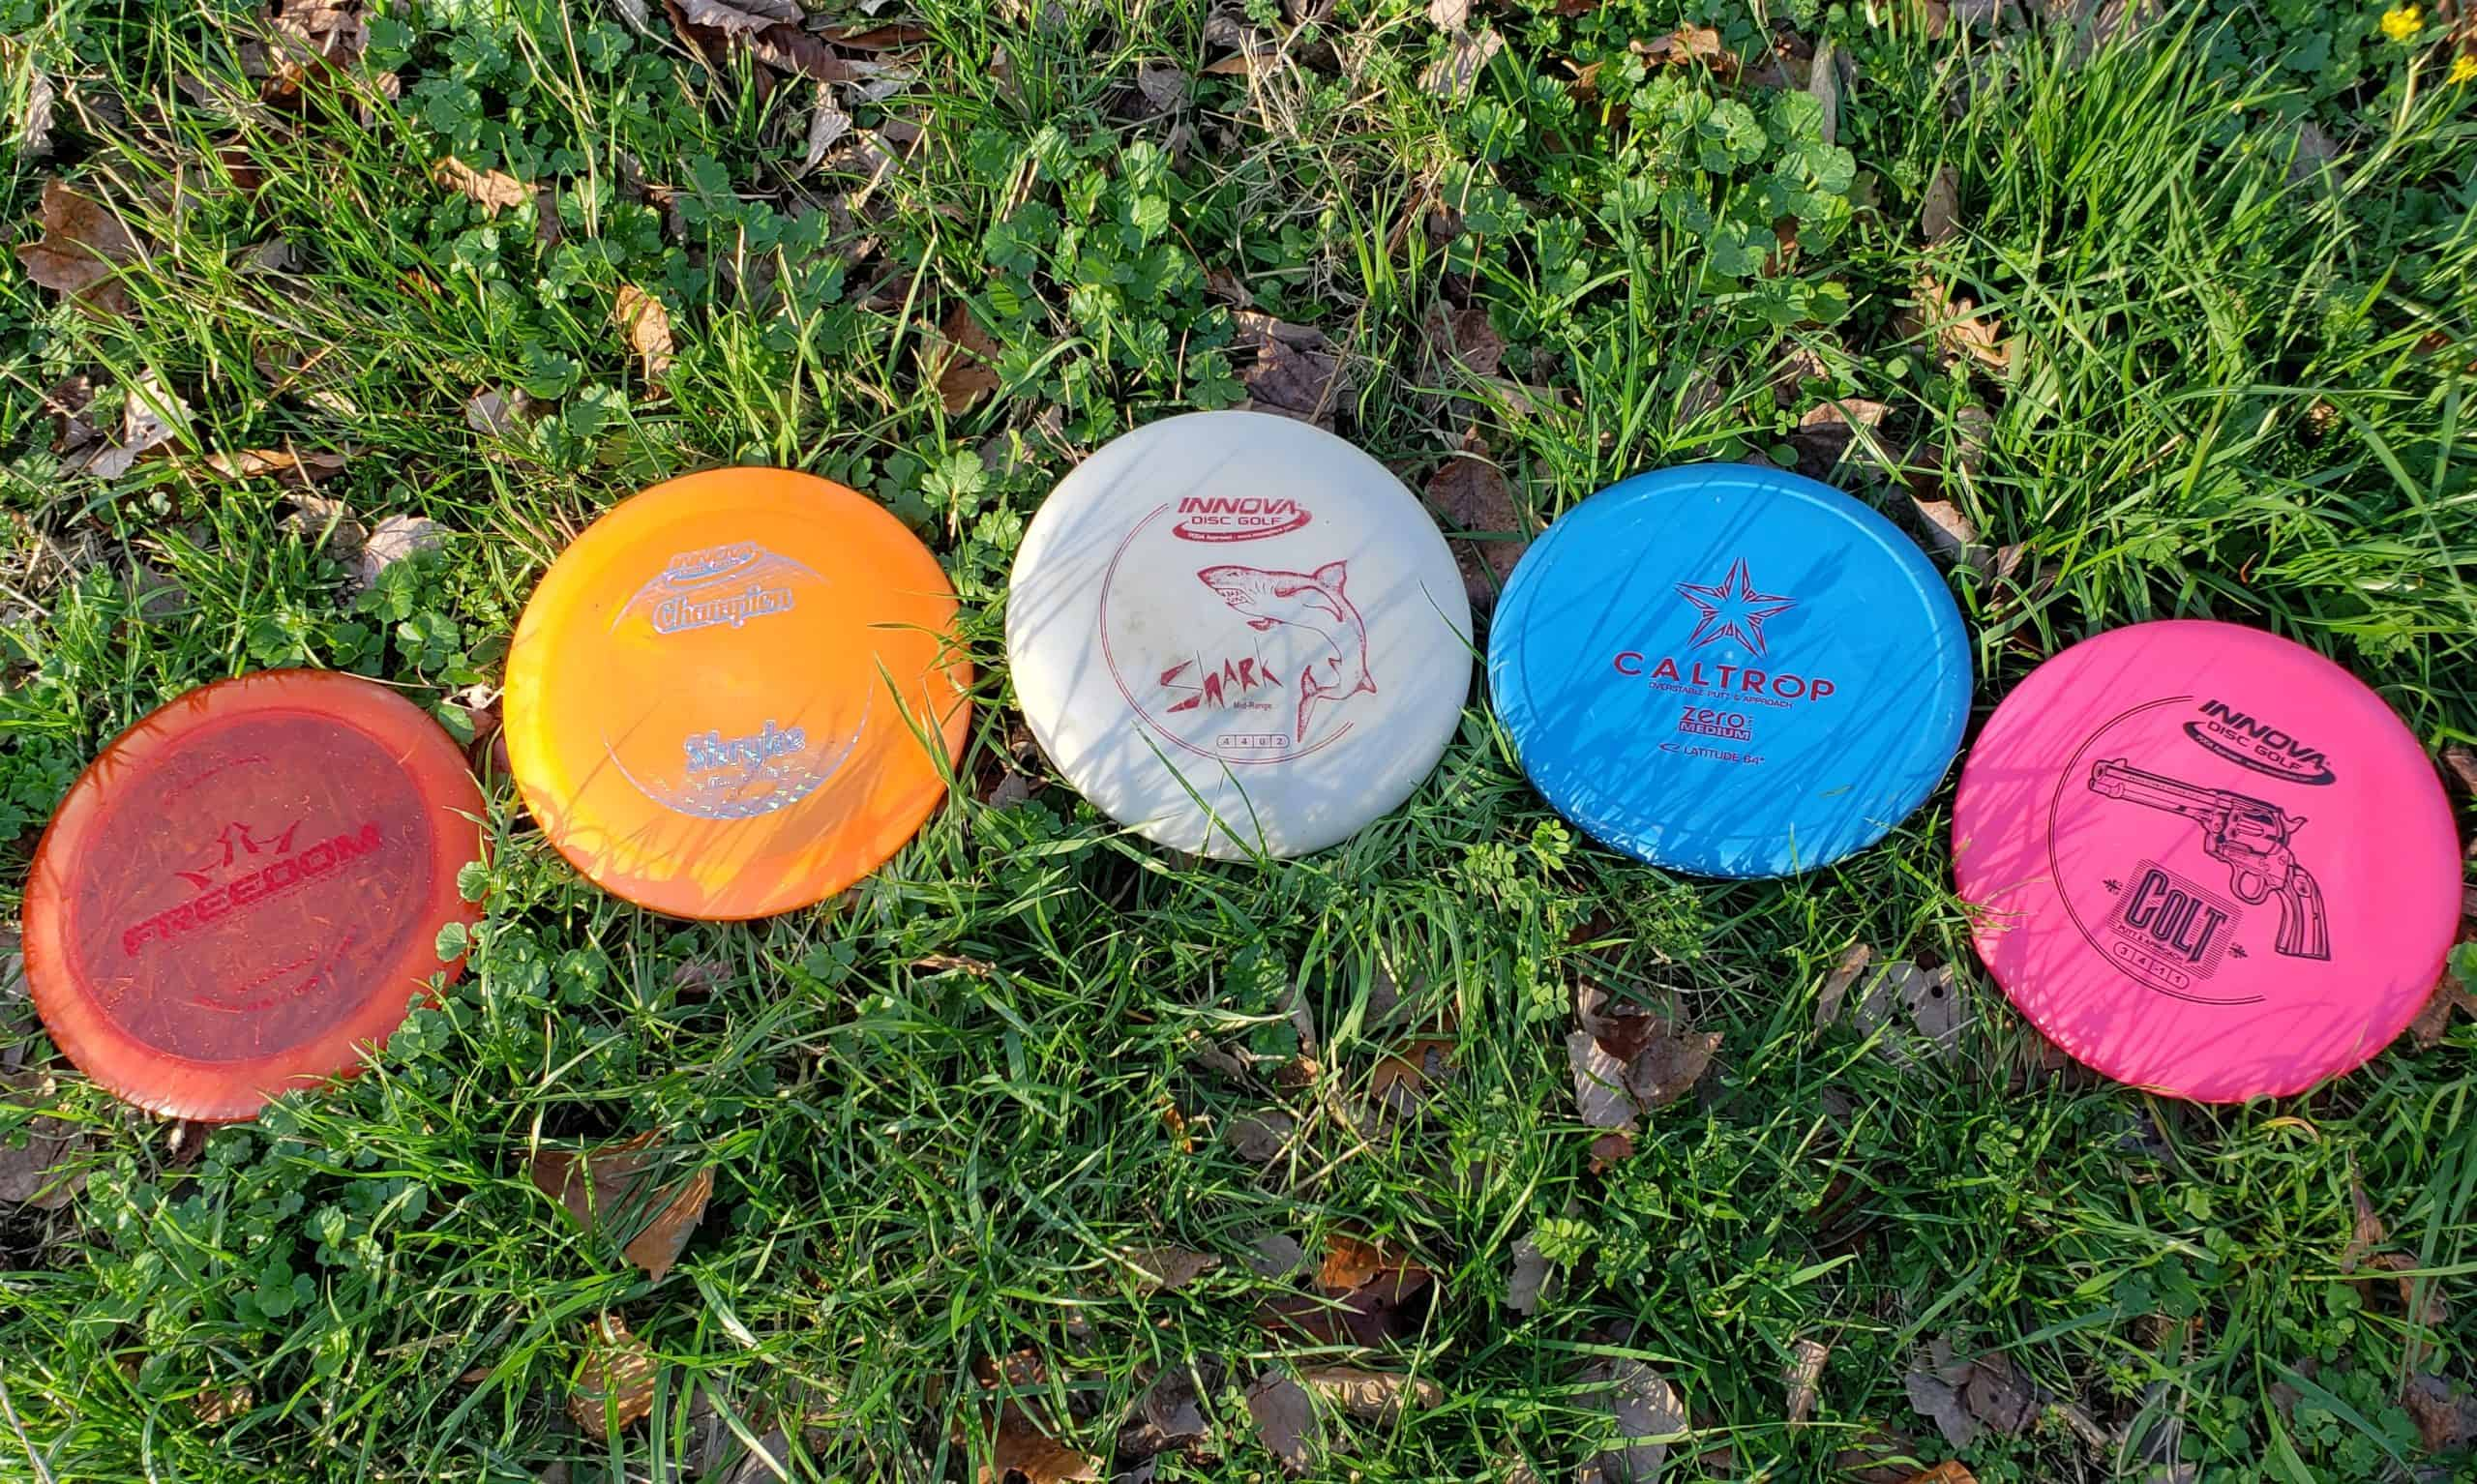 How Many Discs Do You Need For Disc Golf?